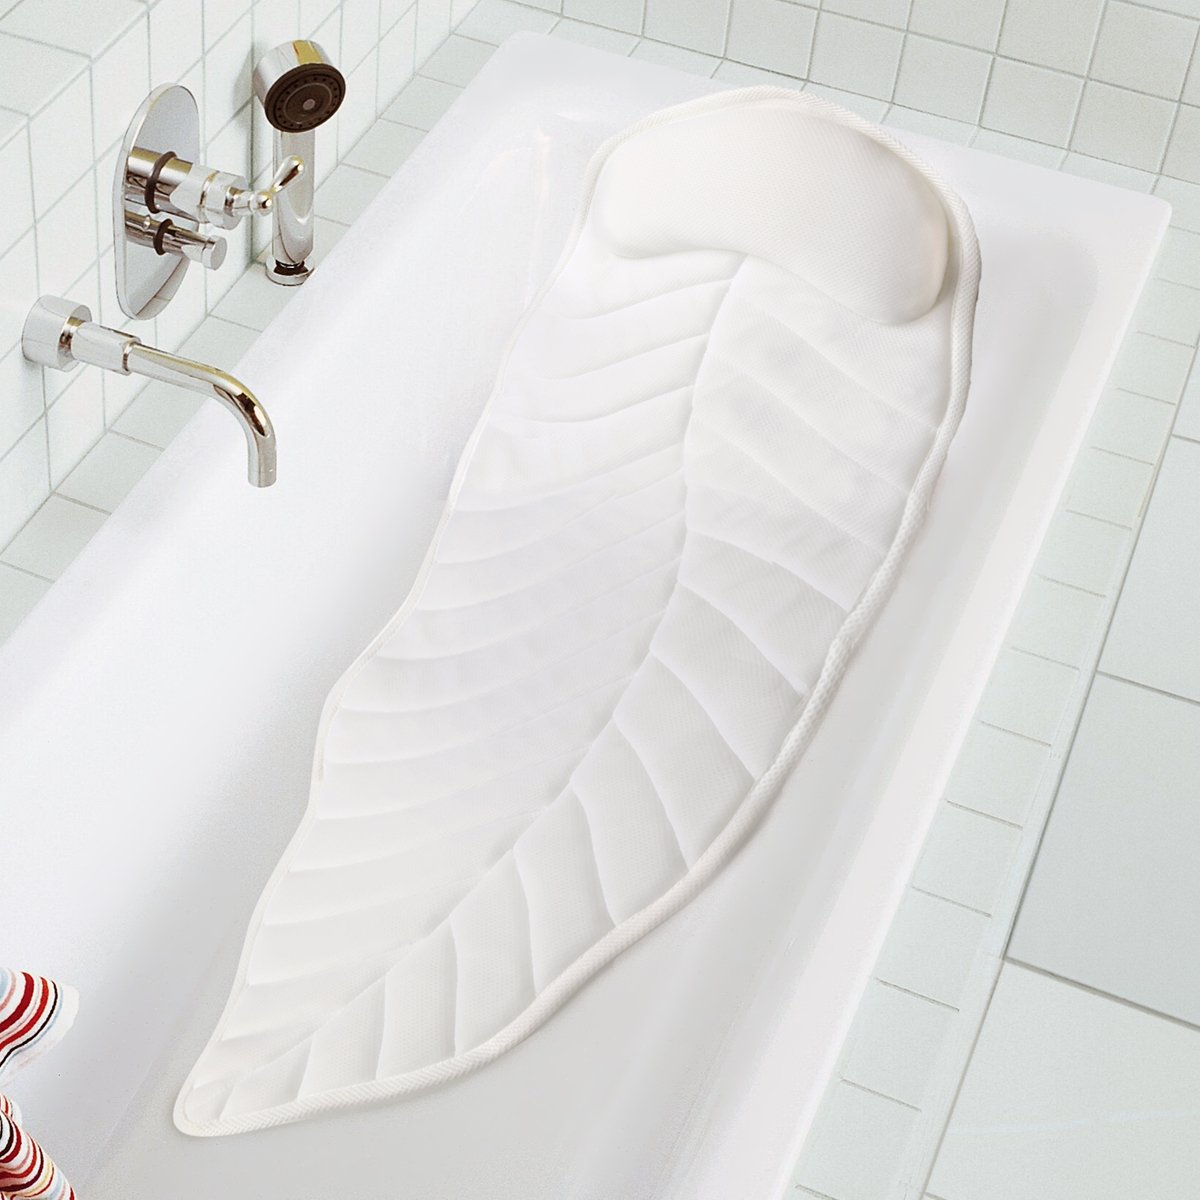 Full Body Spa Bath Pillow Cushion, Bathtub Cushion Mattress with 8 Large Non Slip Suction Cups, Comfort Head Rest and Back & Tailbone Support, 49 x 19 inches Wasan